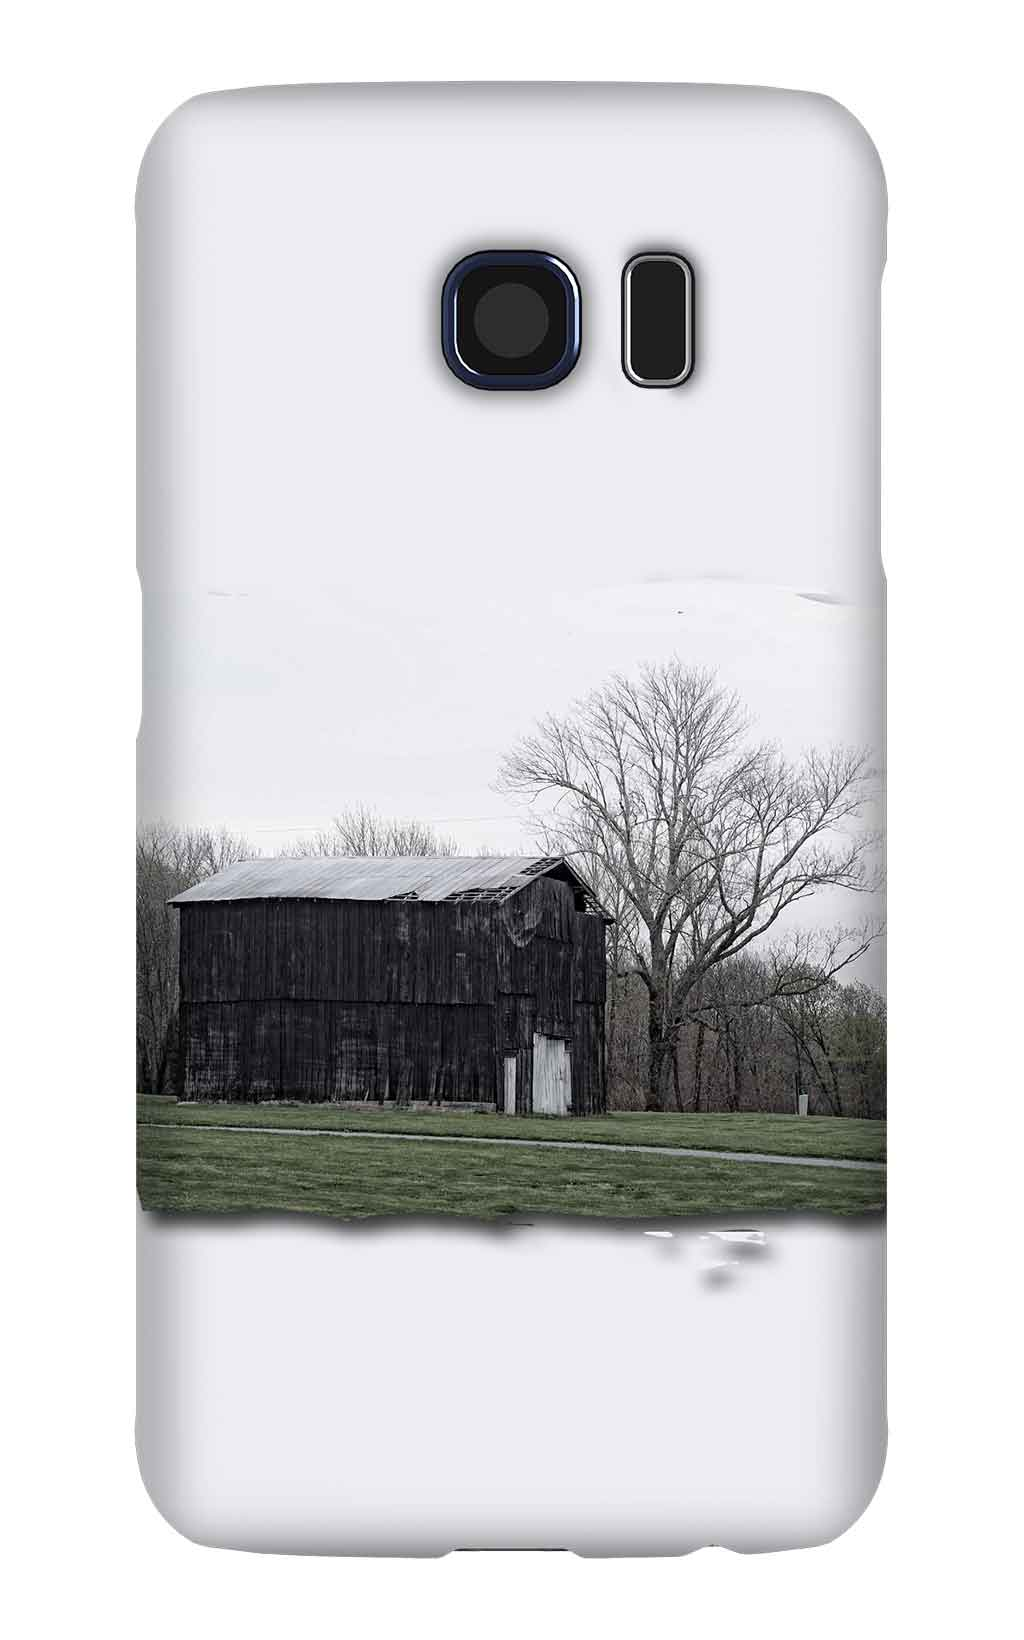 Product, Cellphone Case: Dawn – image of two-story black tobacco barn in Macon County, Tennessee